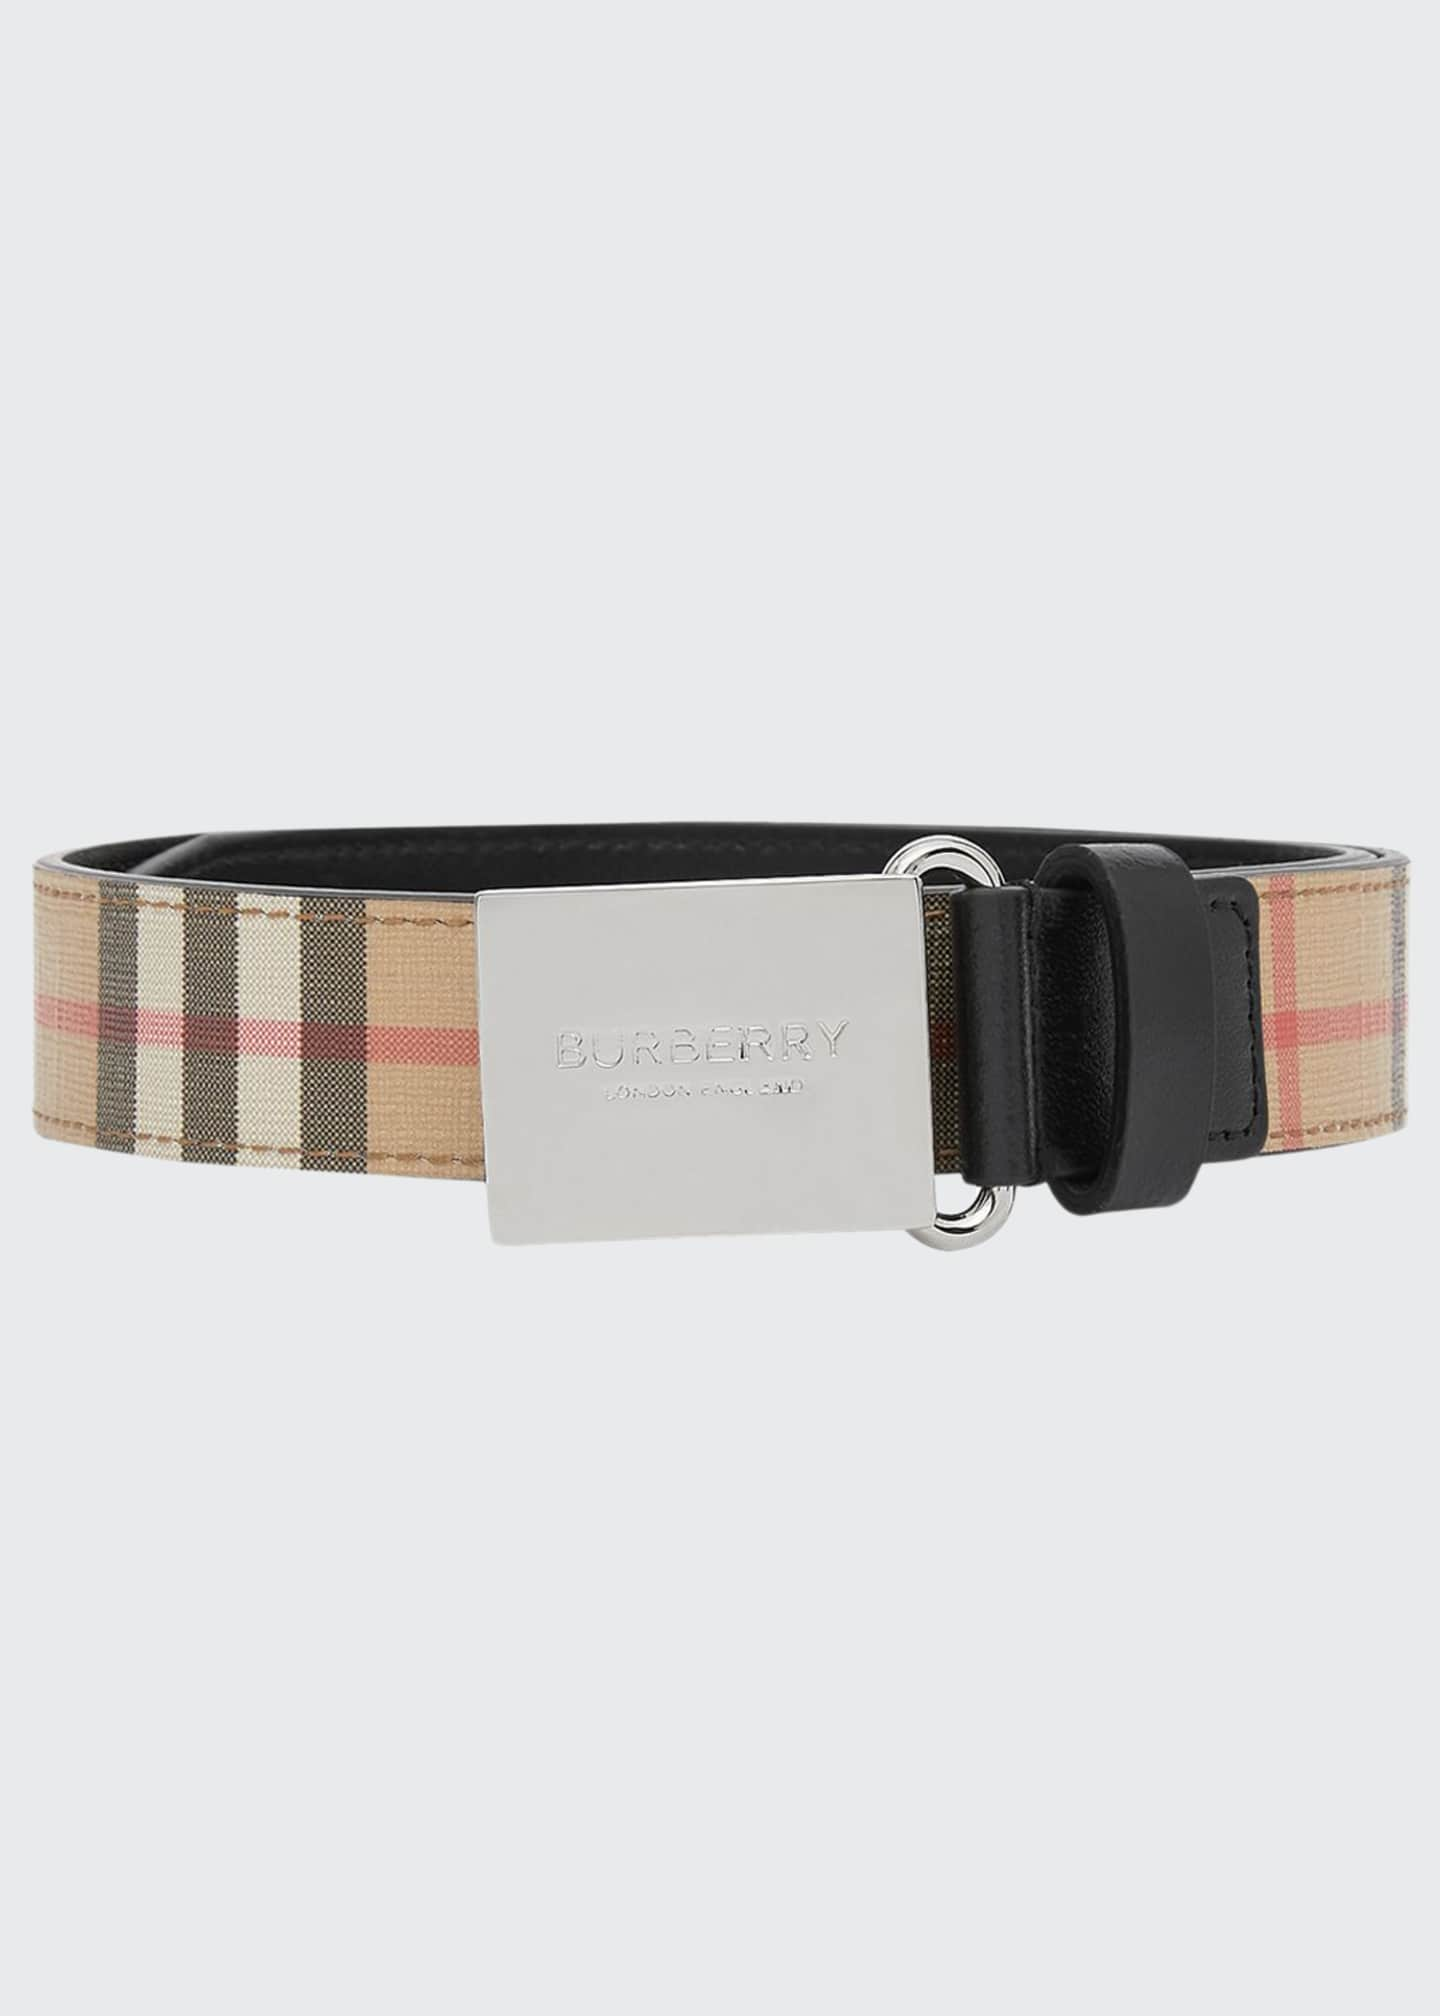 Burberry Kid's Check Belt w/ Logo Plaque Buckle